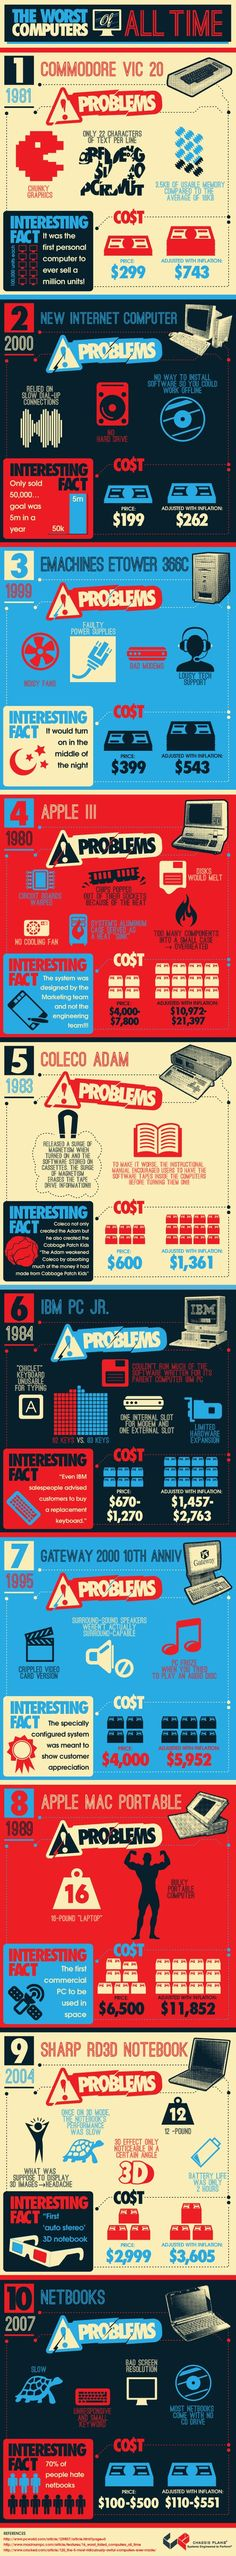 The worst computers of all time #infografia #infographic